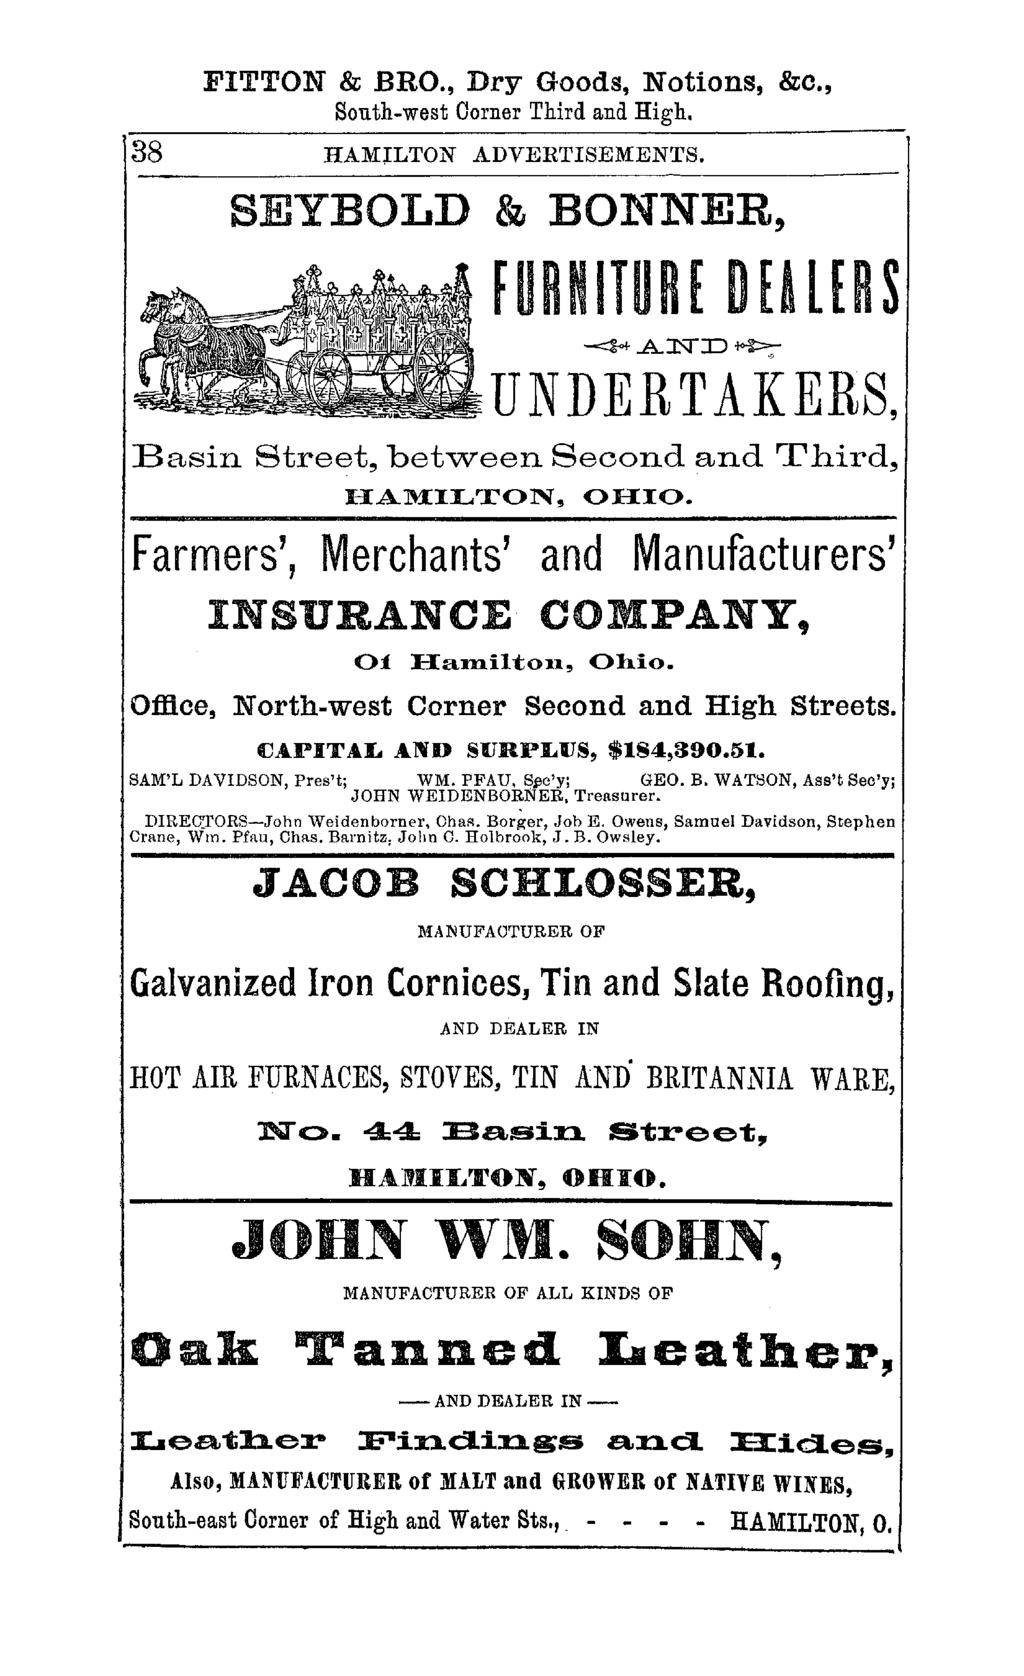 FITTON & BRO., Dry Goods, Notions, &c., South-west Corner Third and High. 38 HAMlLTON ADVERTISEMENTS.